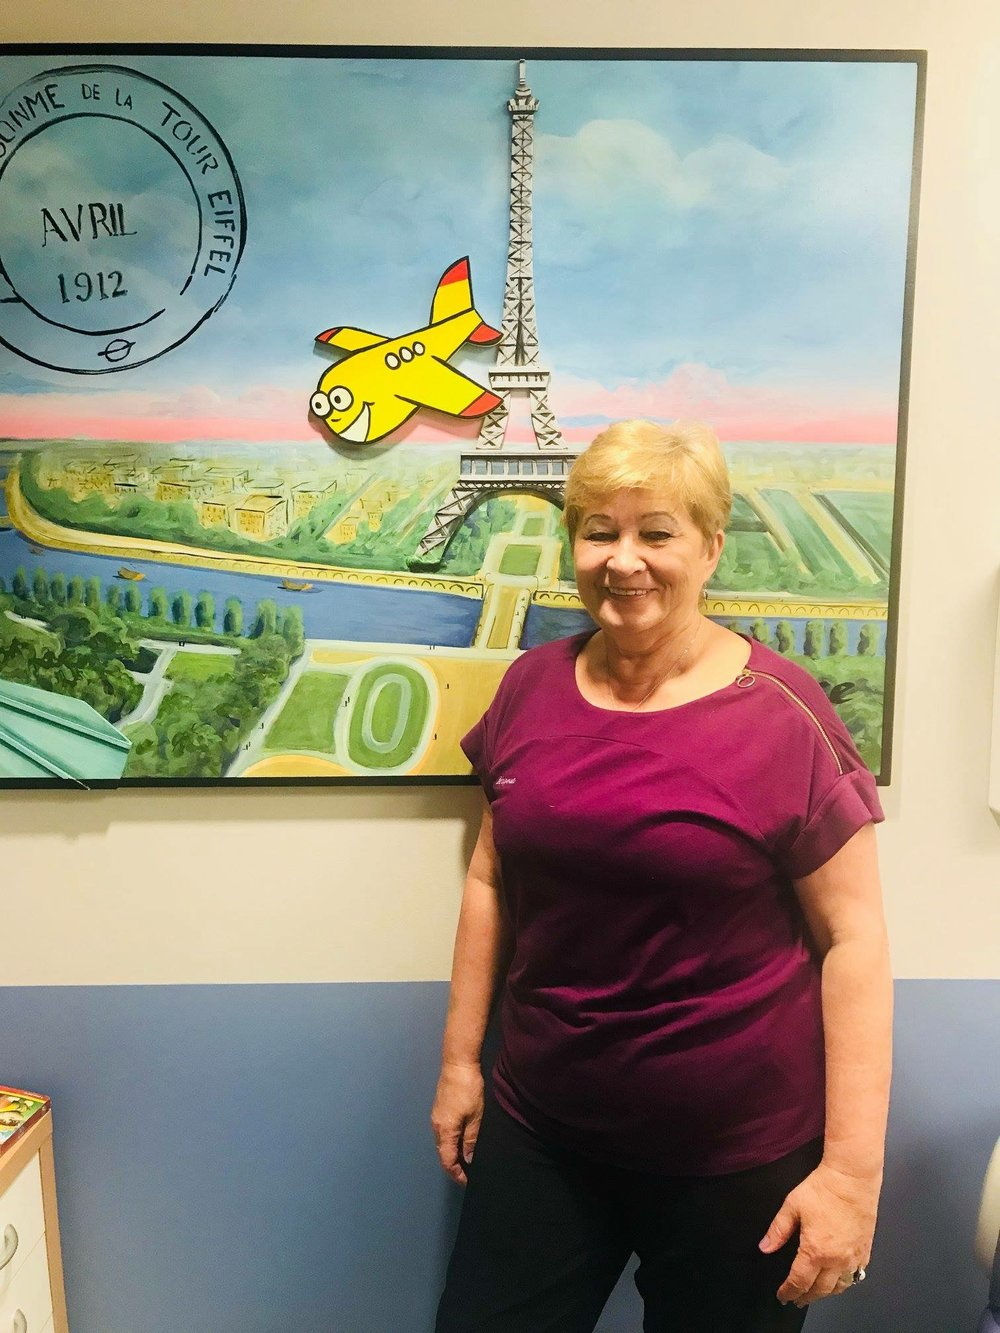 "October employee of the month: Malgosia - We would like to congratulate Malgosia on winning Employee Of The Month recognition last month! She does so much behind the scenes for all of us! She is truly the ""Mama"" of the office!Here are reasons why Mrs. Malgosia earned this month's prestigious title:*She is always on top of things! She did great at organizing ourannual staff pictures!*She's great at organizing everything for us and getting our supplies.*Mama always helps even though she's behind the scenes!"